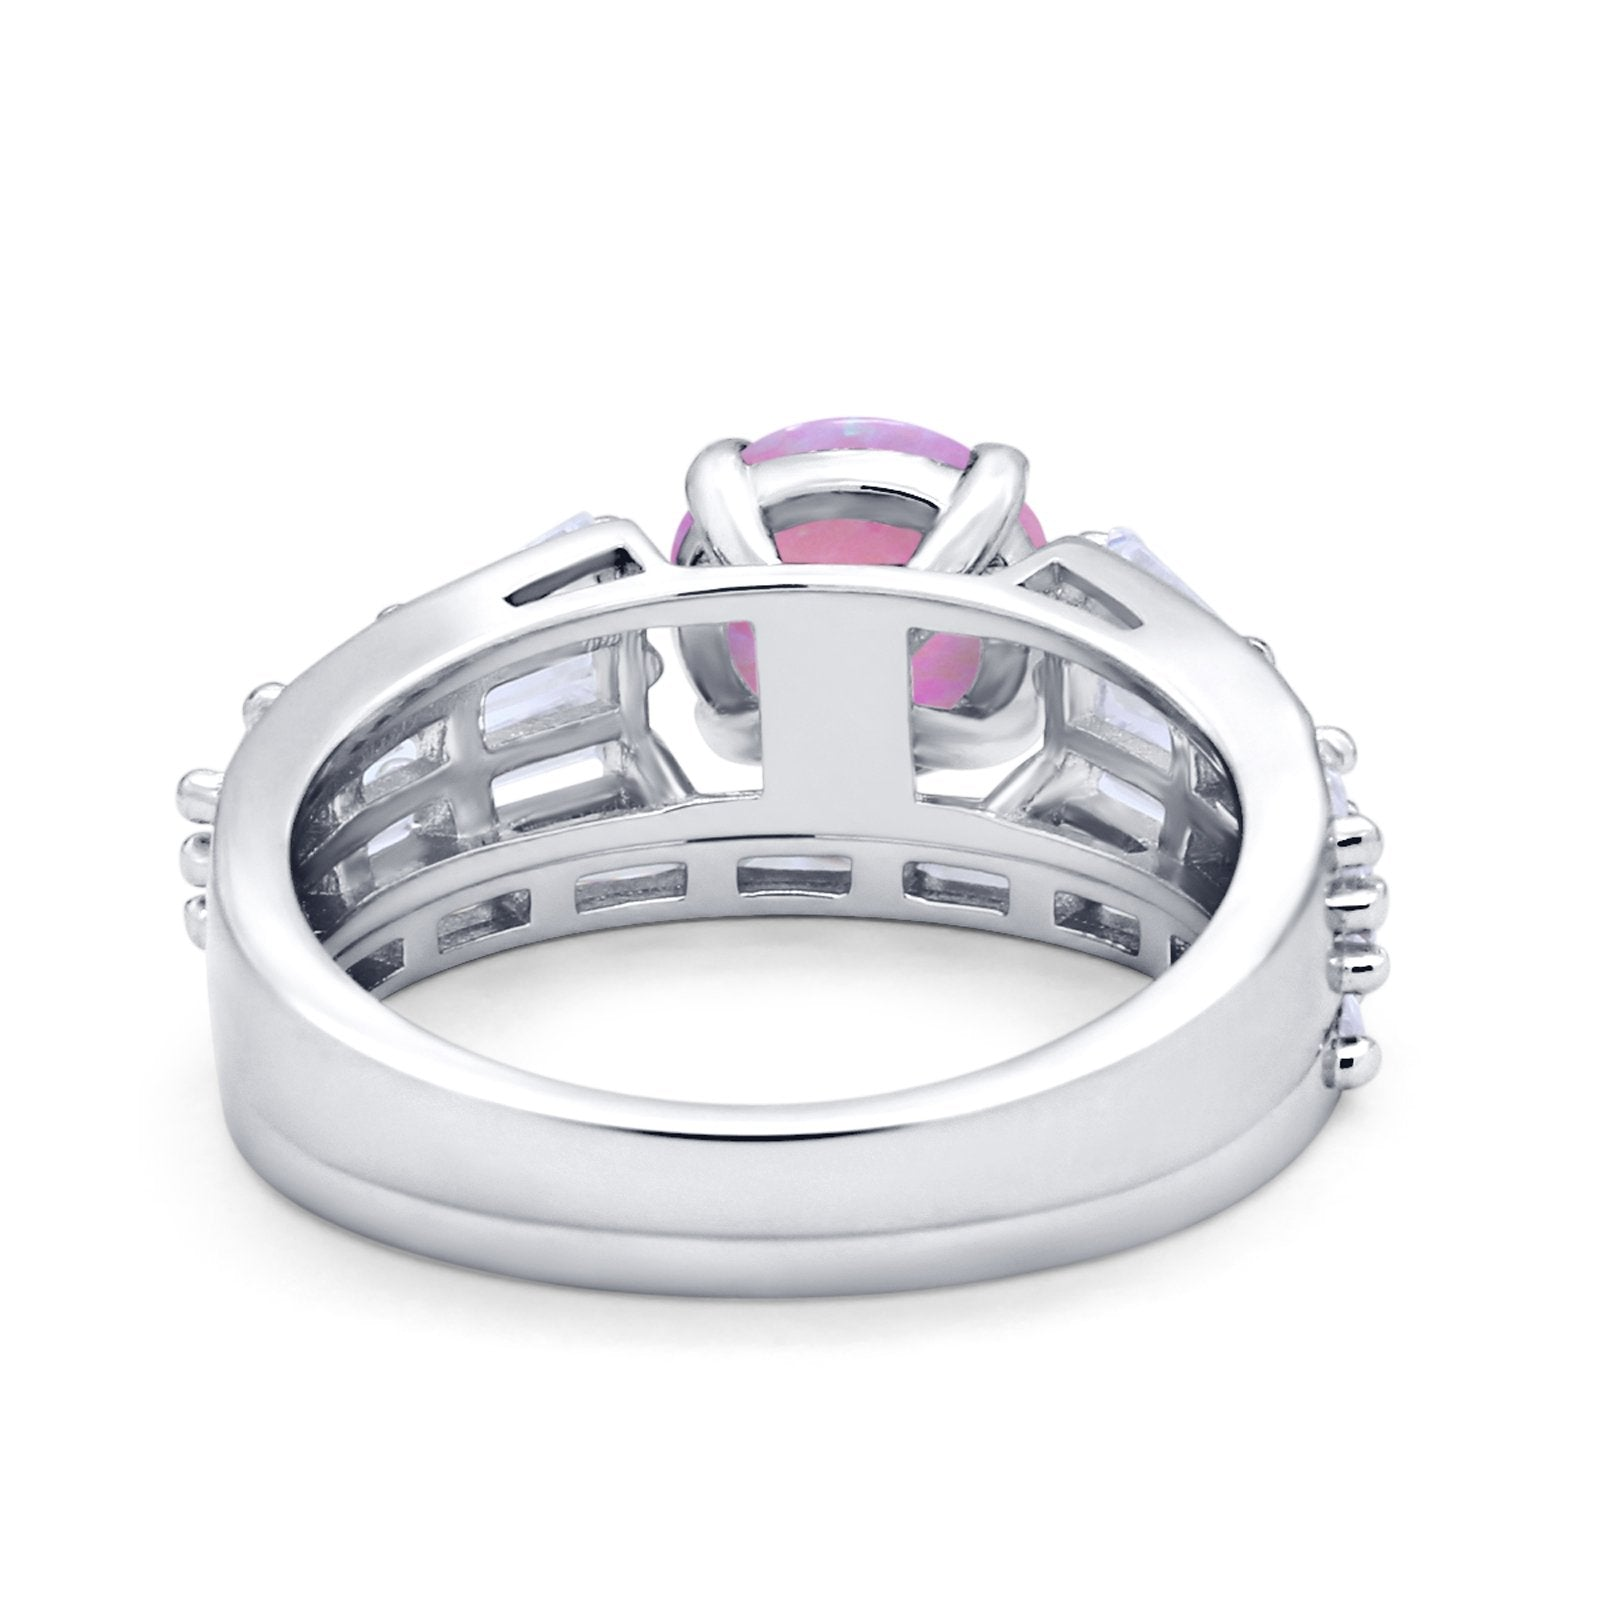 Two Piece Ring Band Bridal Round Simulated Cubic Zirconia 925 Sterling Silver